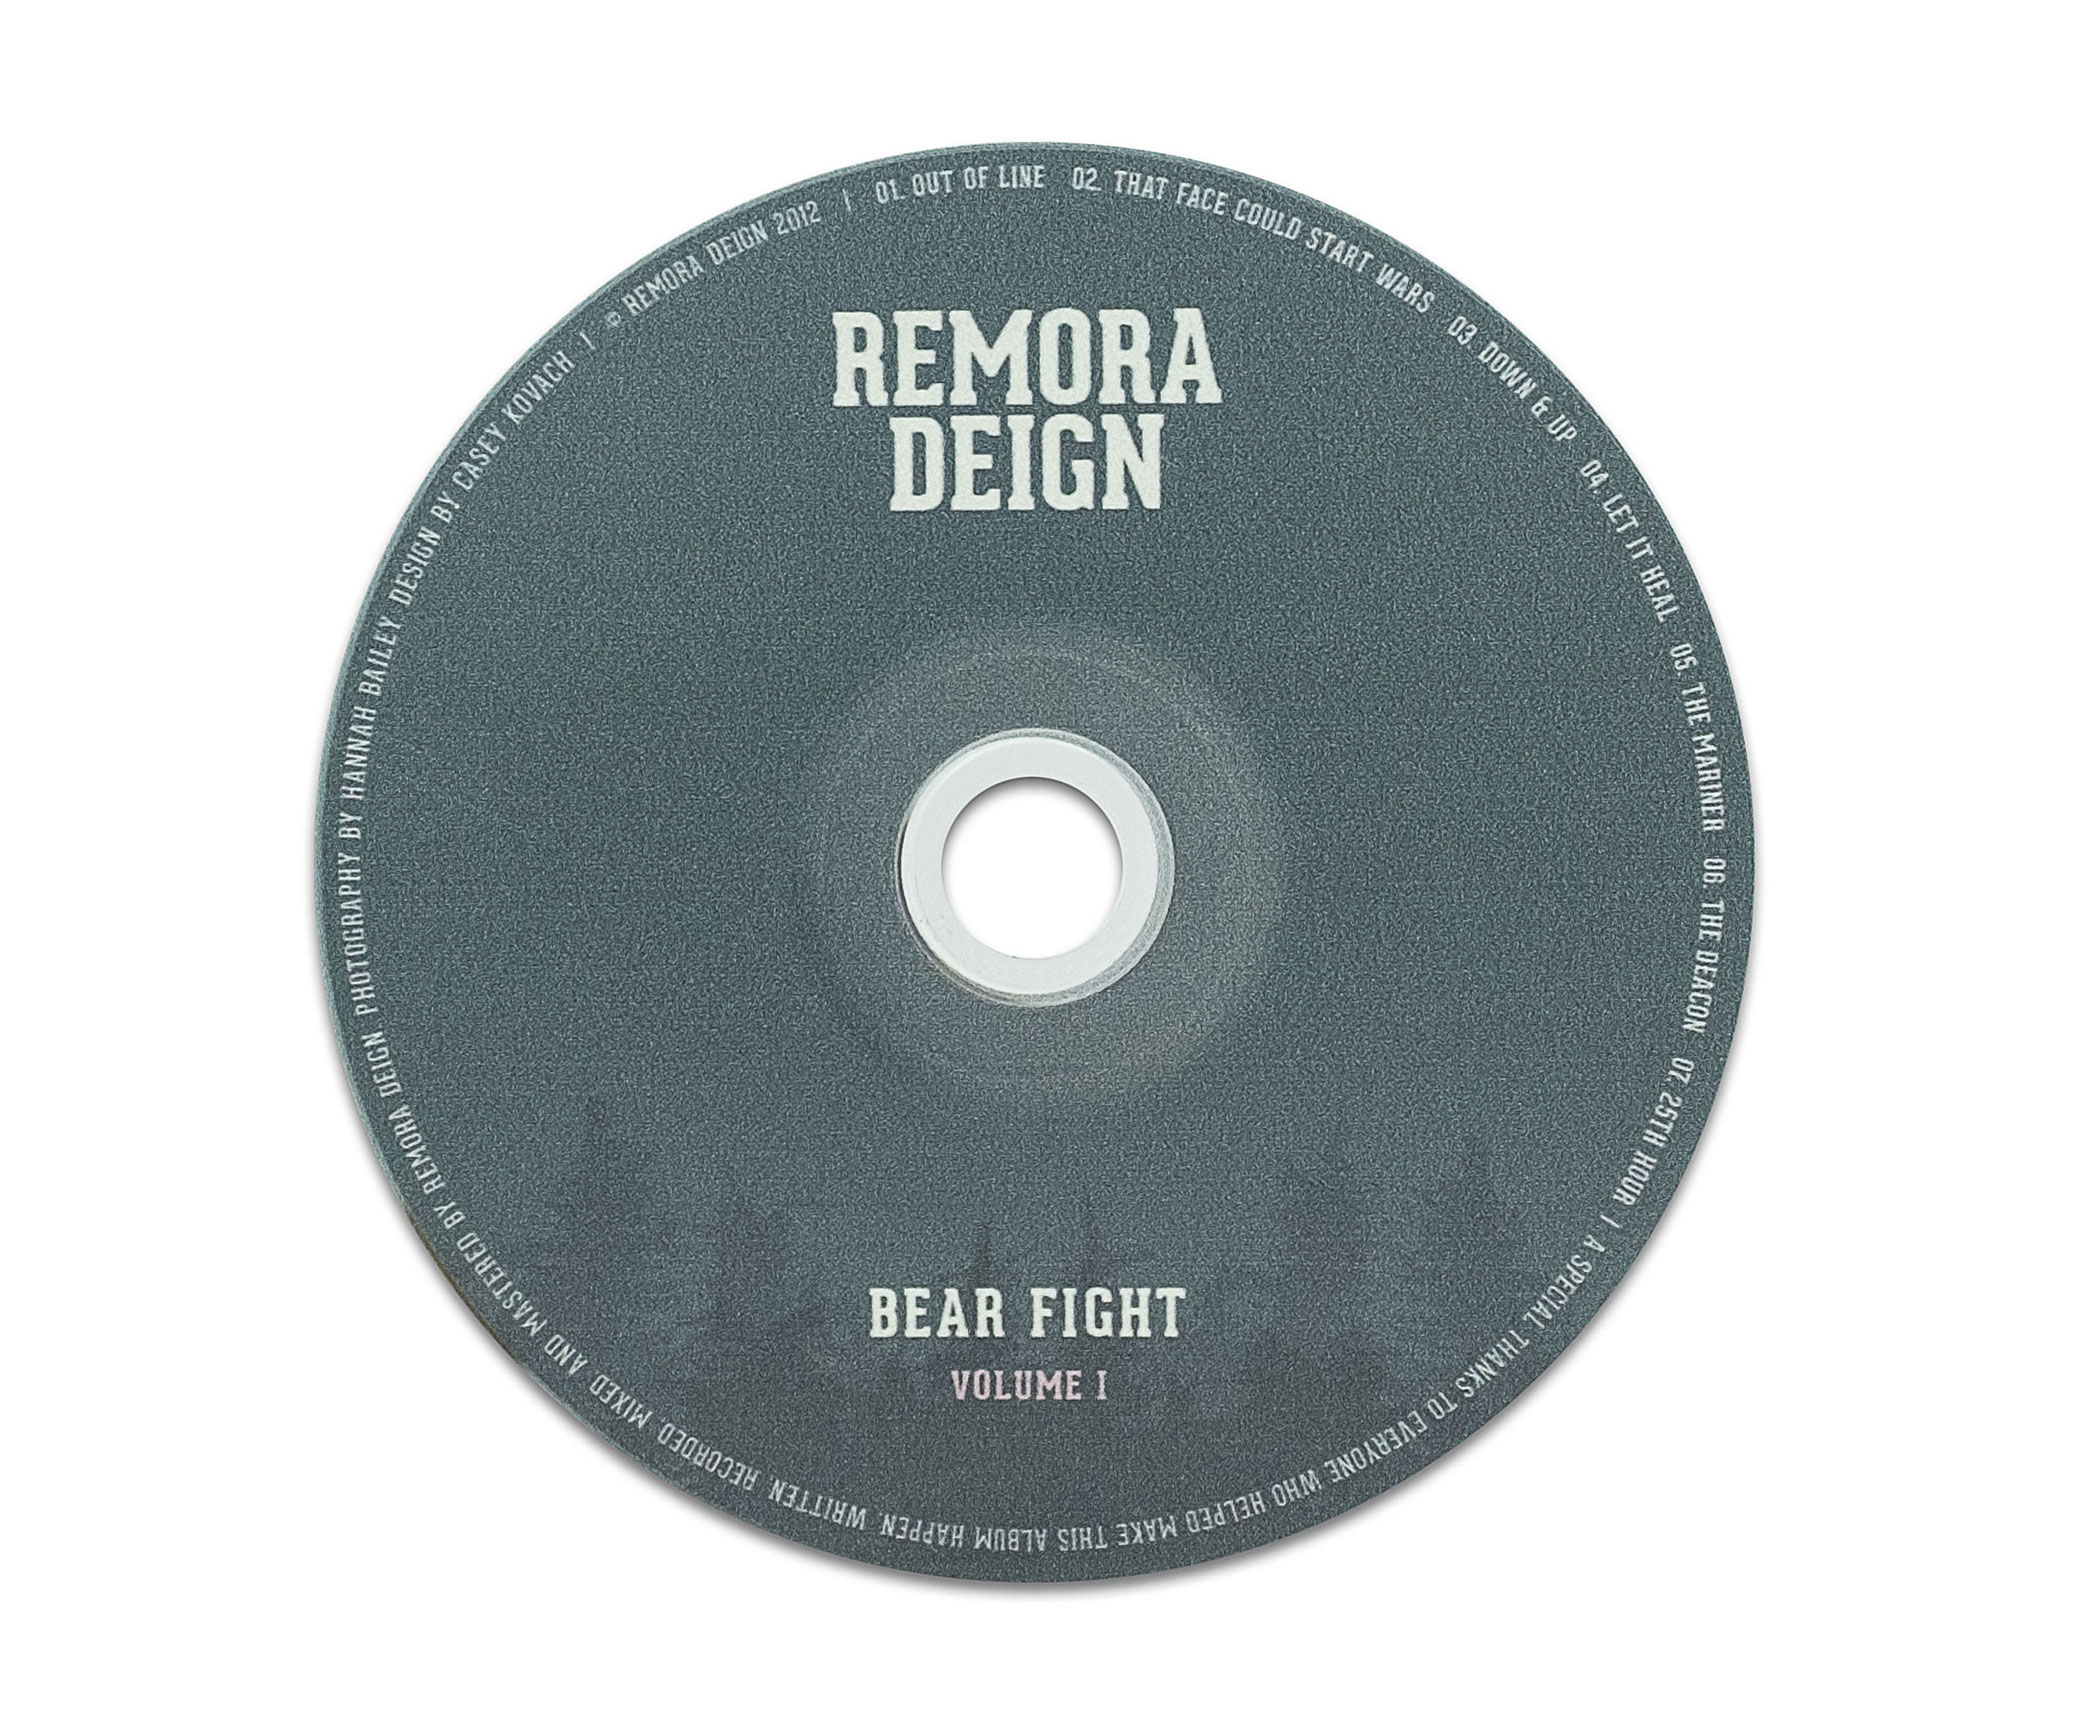 BearFight_CD_Details2.jpg